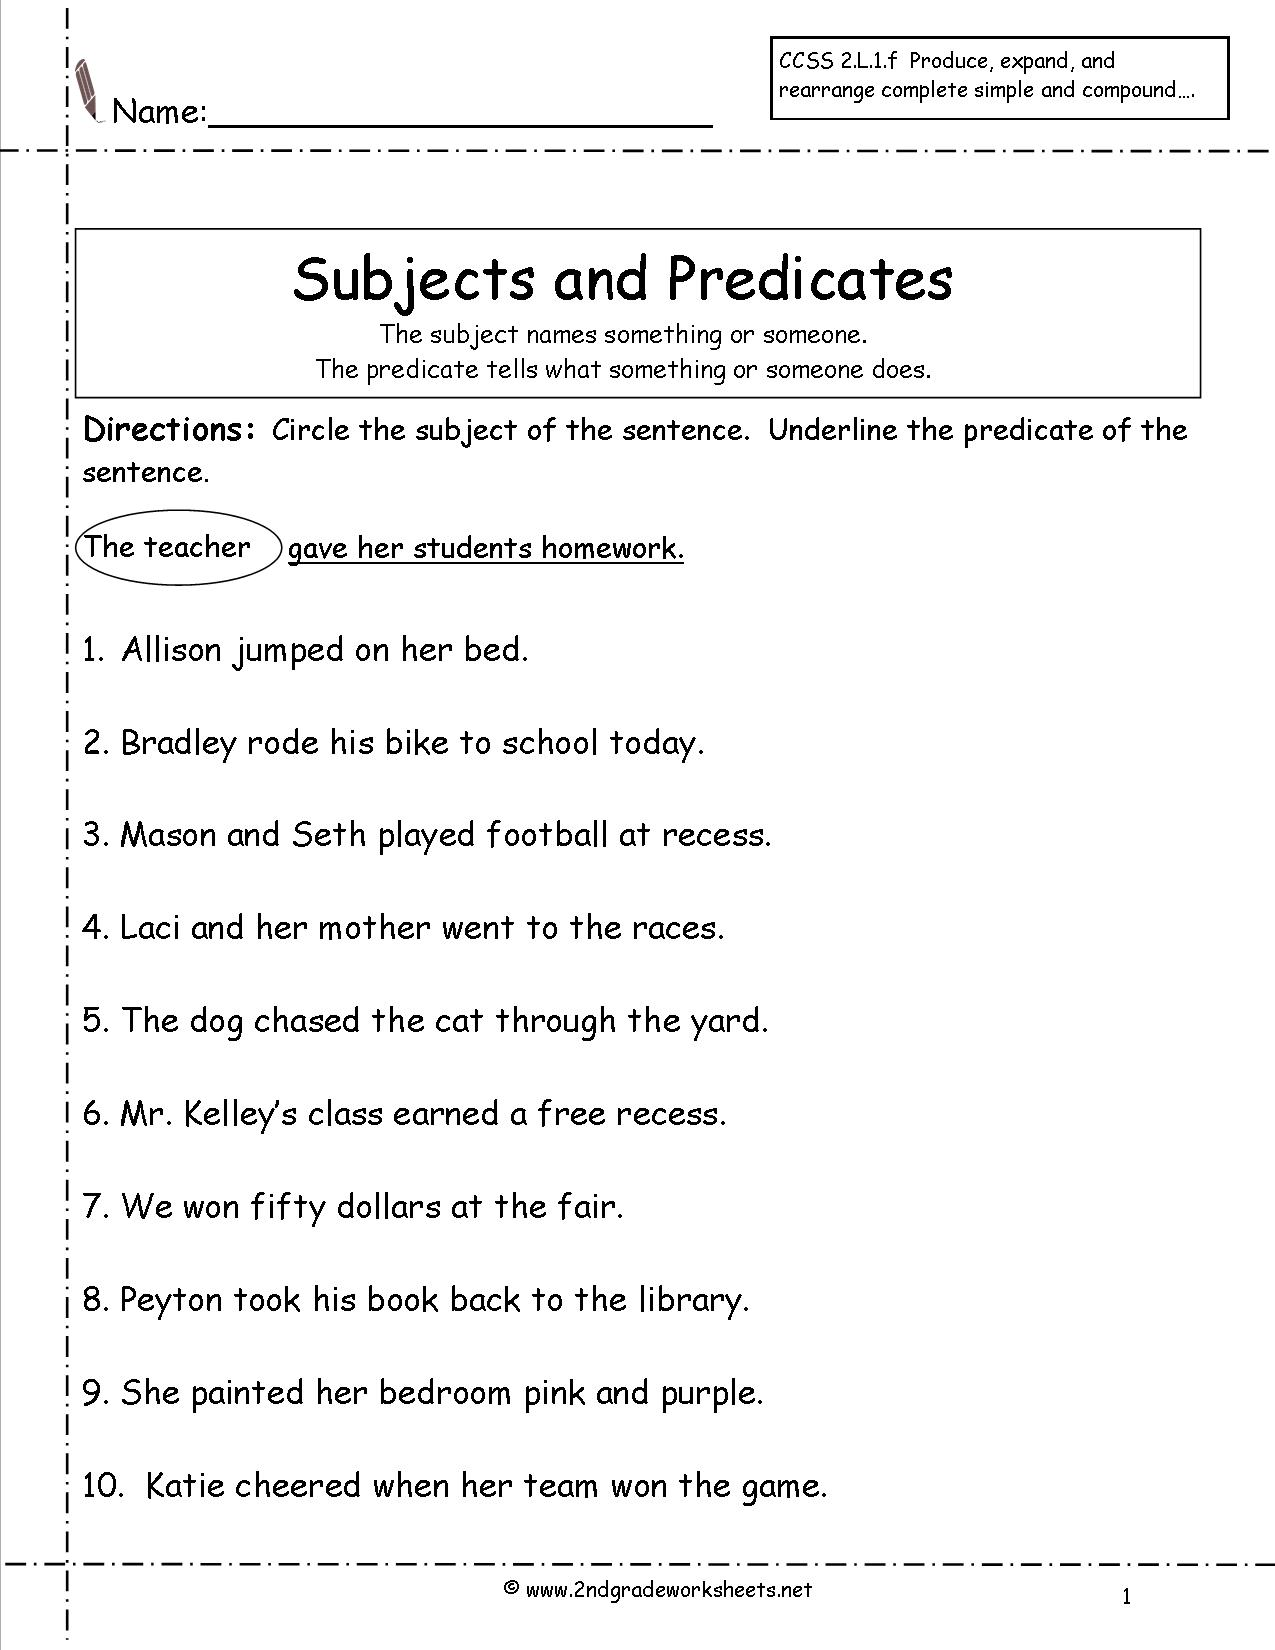 Complete Predicates Worksheets Worksheets For All Free